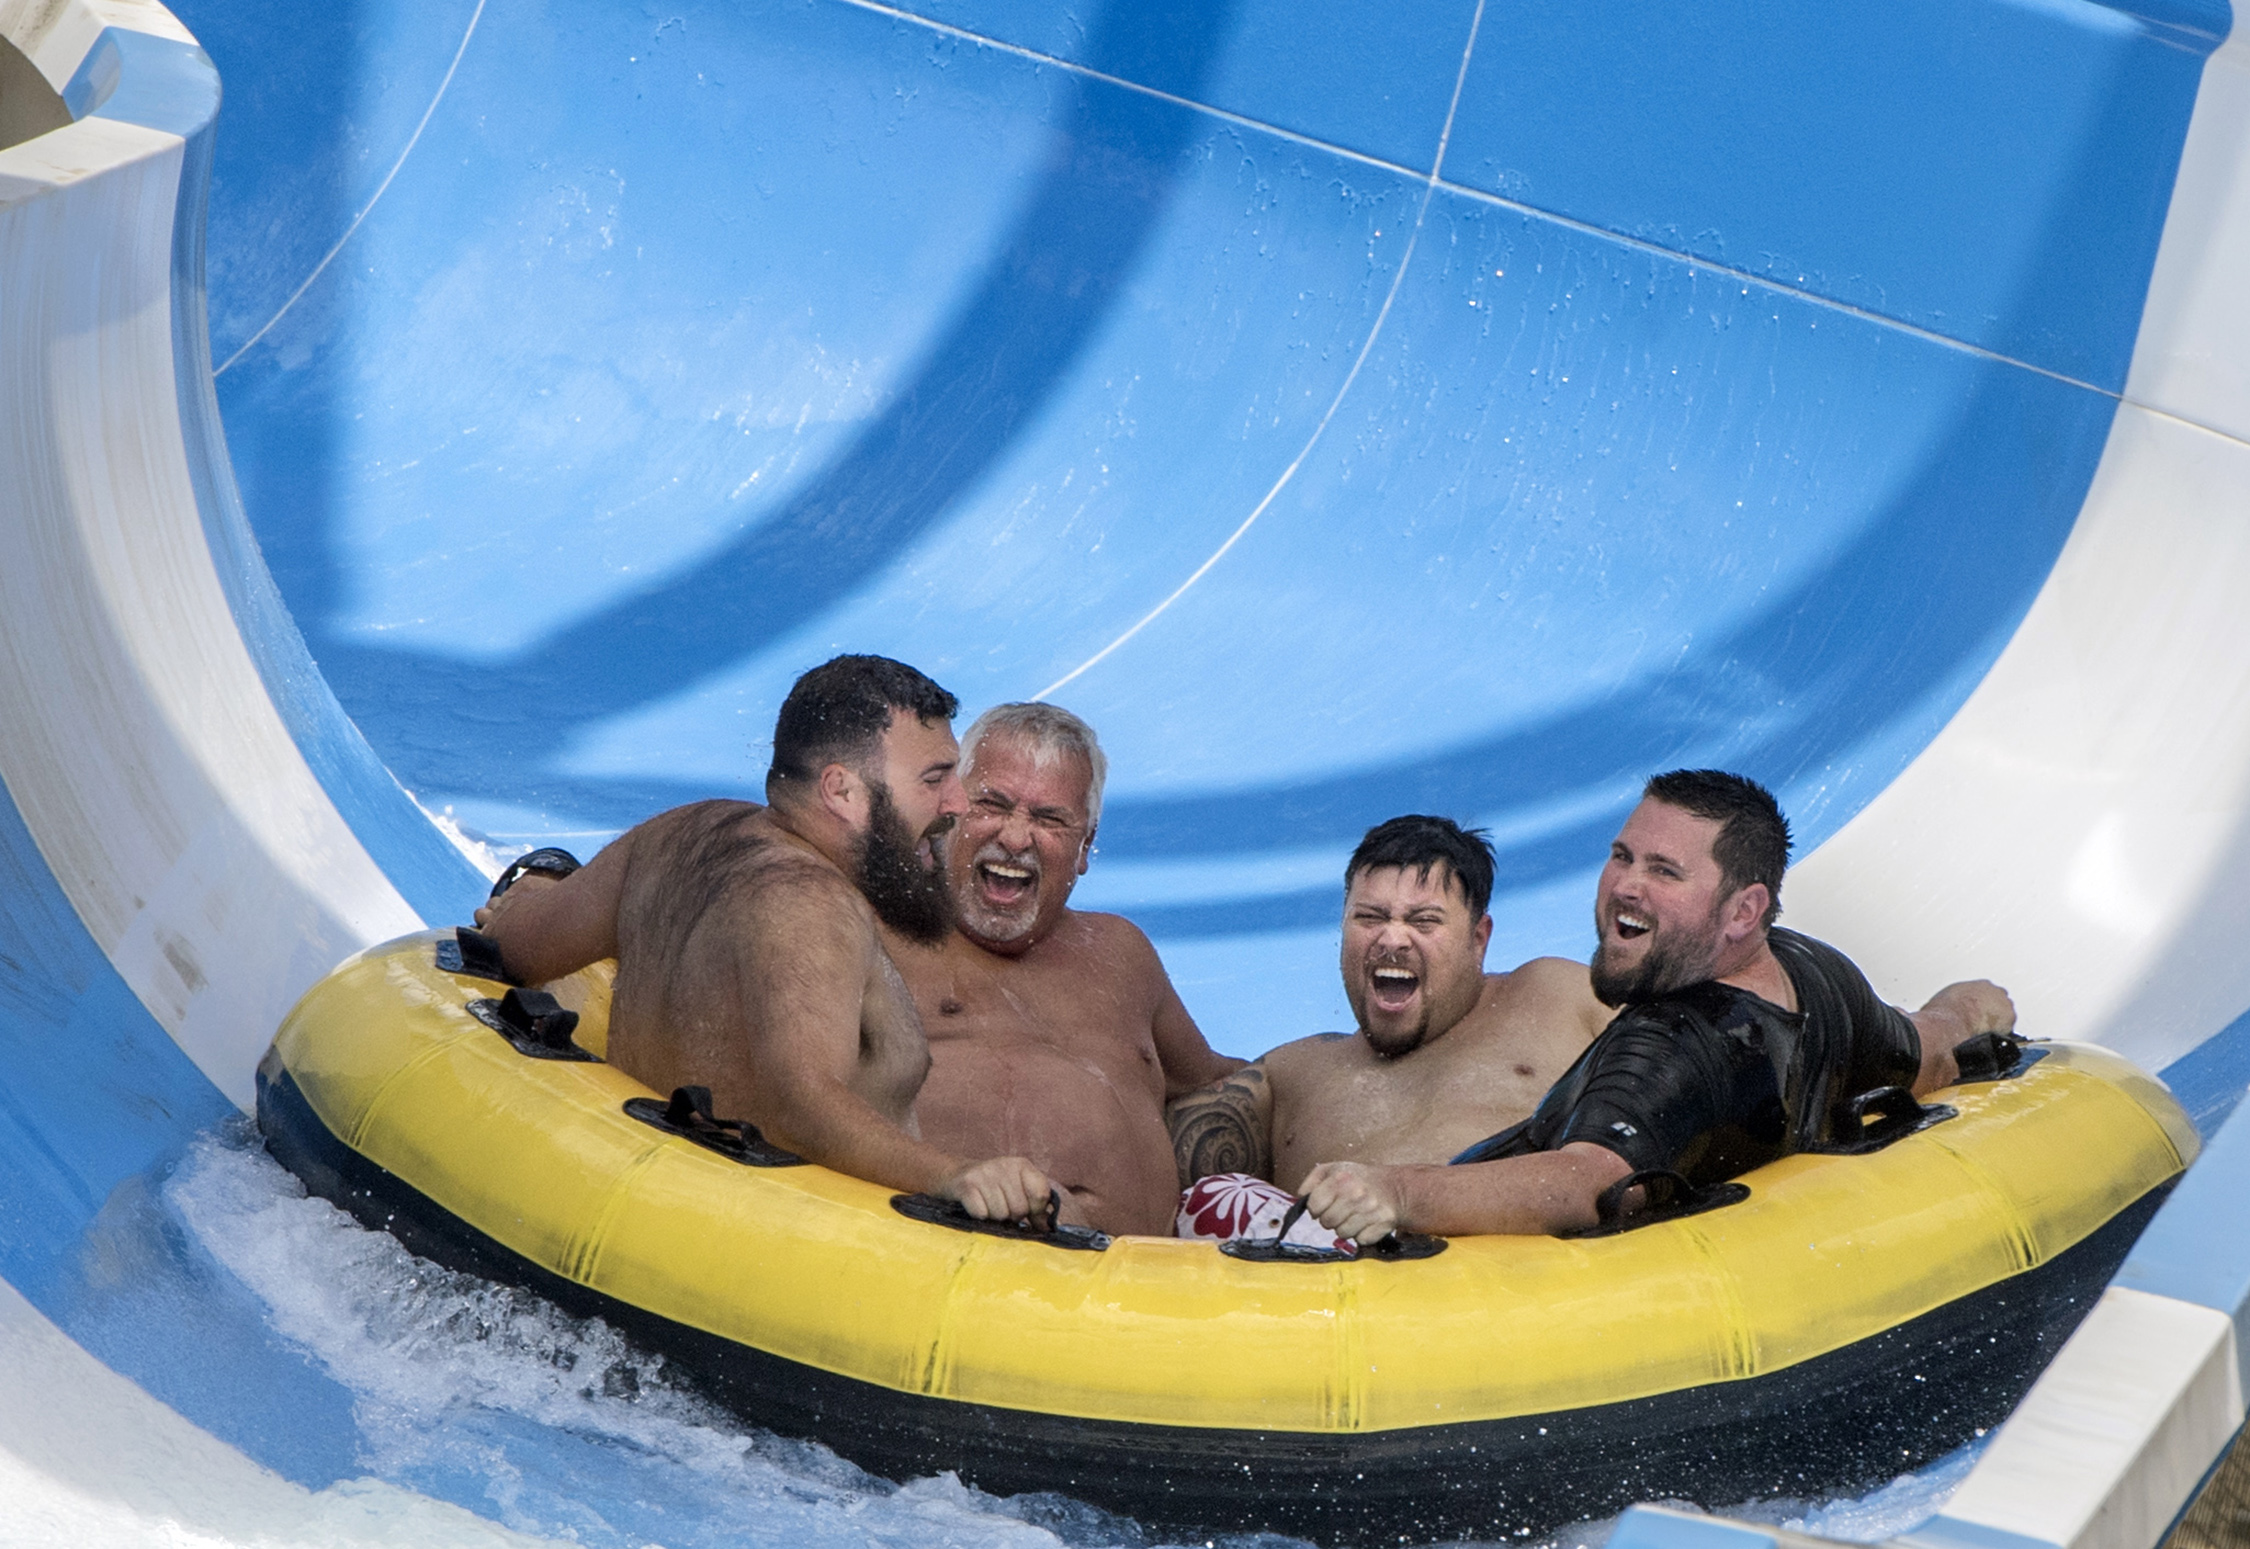 The Wedge whips riders around a slide at Knott's Soak City in Buena Park on Sunday, May 13, 2018. The park officially opens on May 19. Sunday was reserved for annual pass holders.